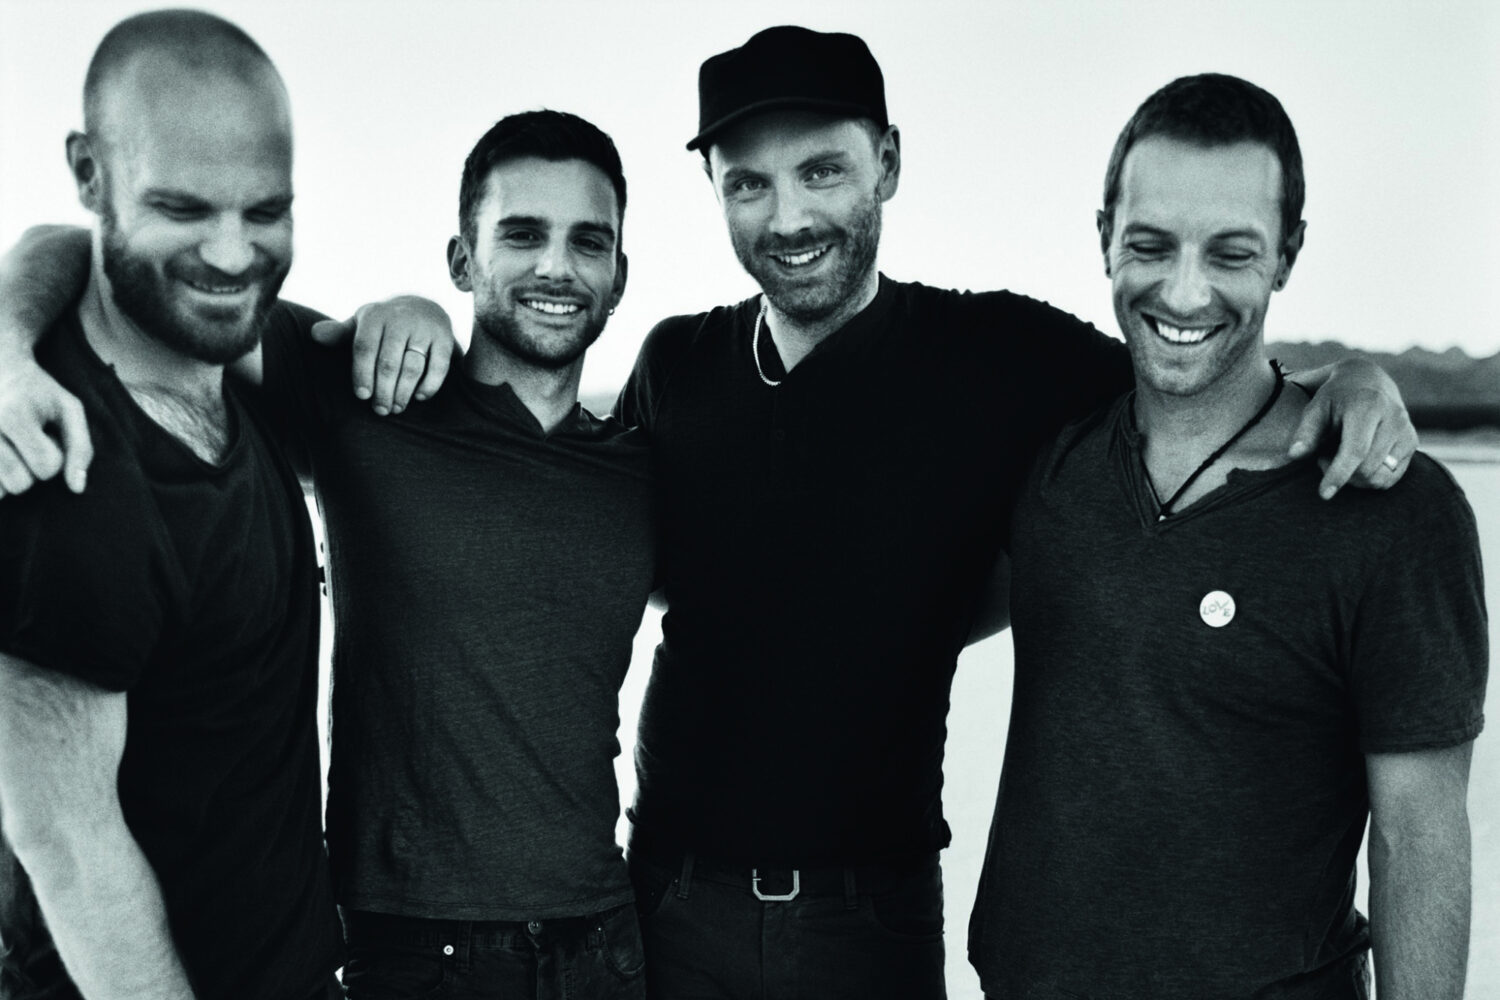 Looks like Coldplay are about to announce a new album